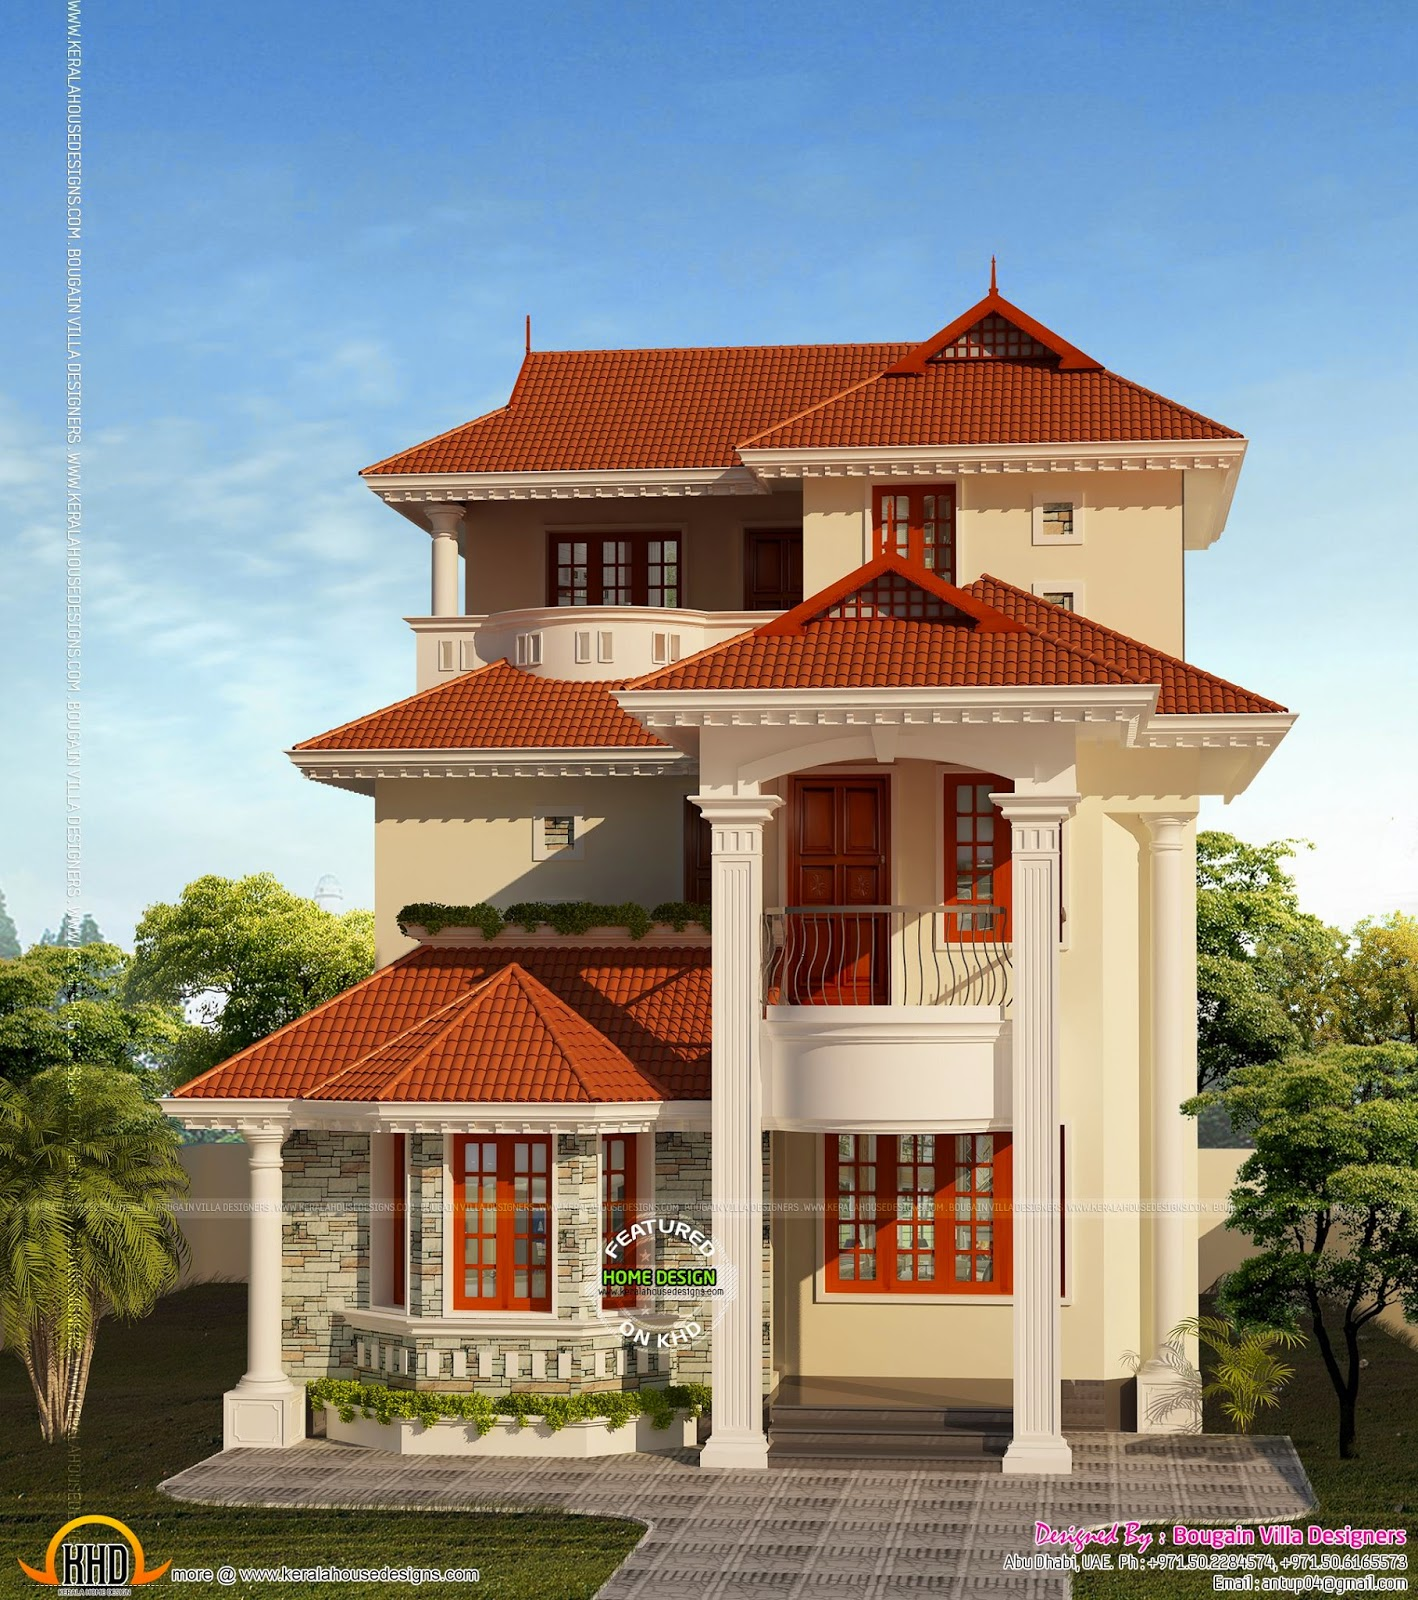 Small plot house plan kerala home design and floor plans for Home plans with photos